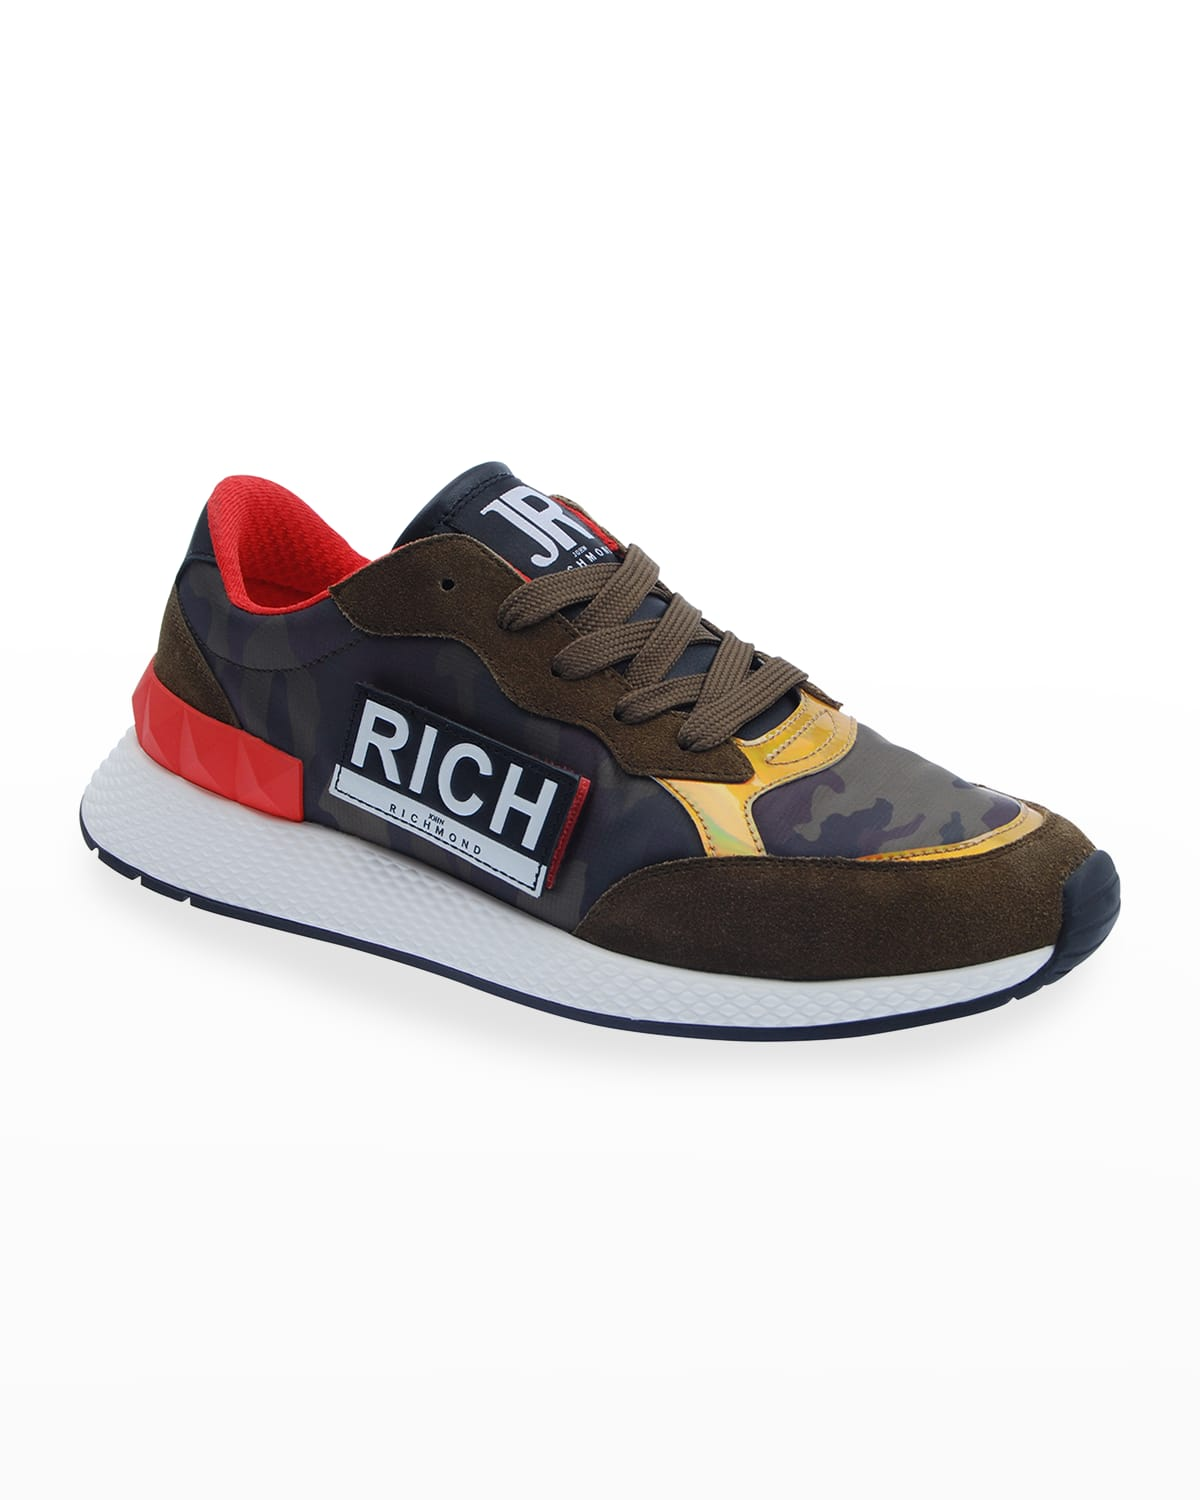 Men's Low Top Sneakers With Side L